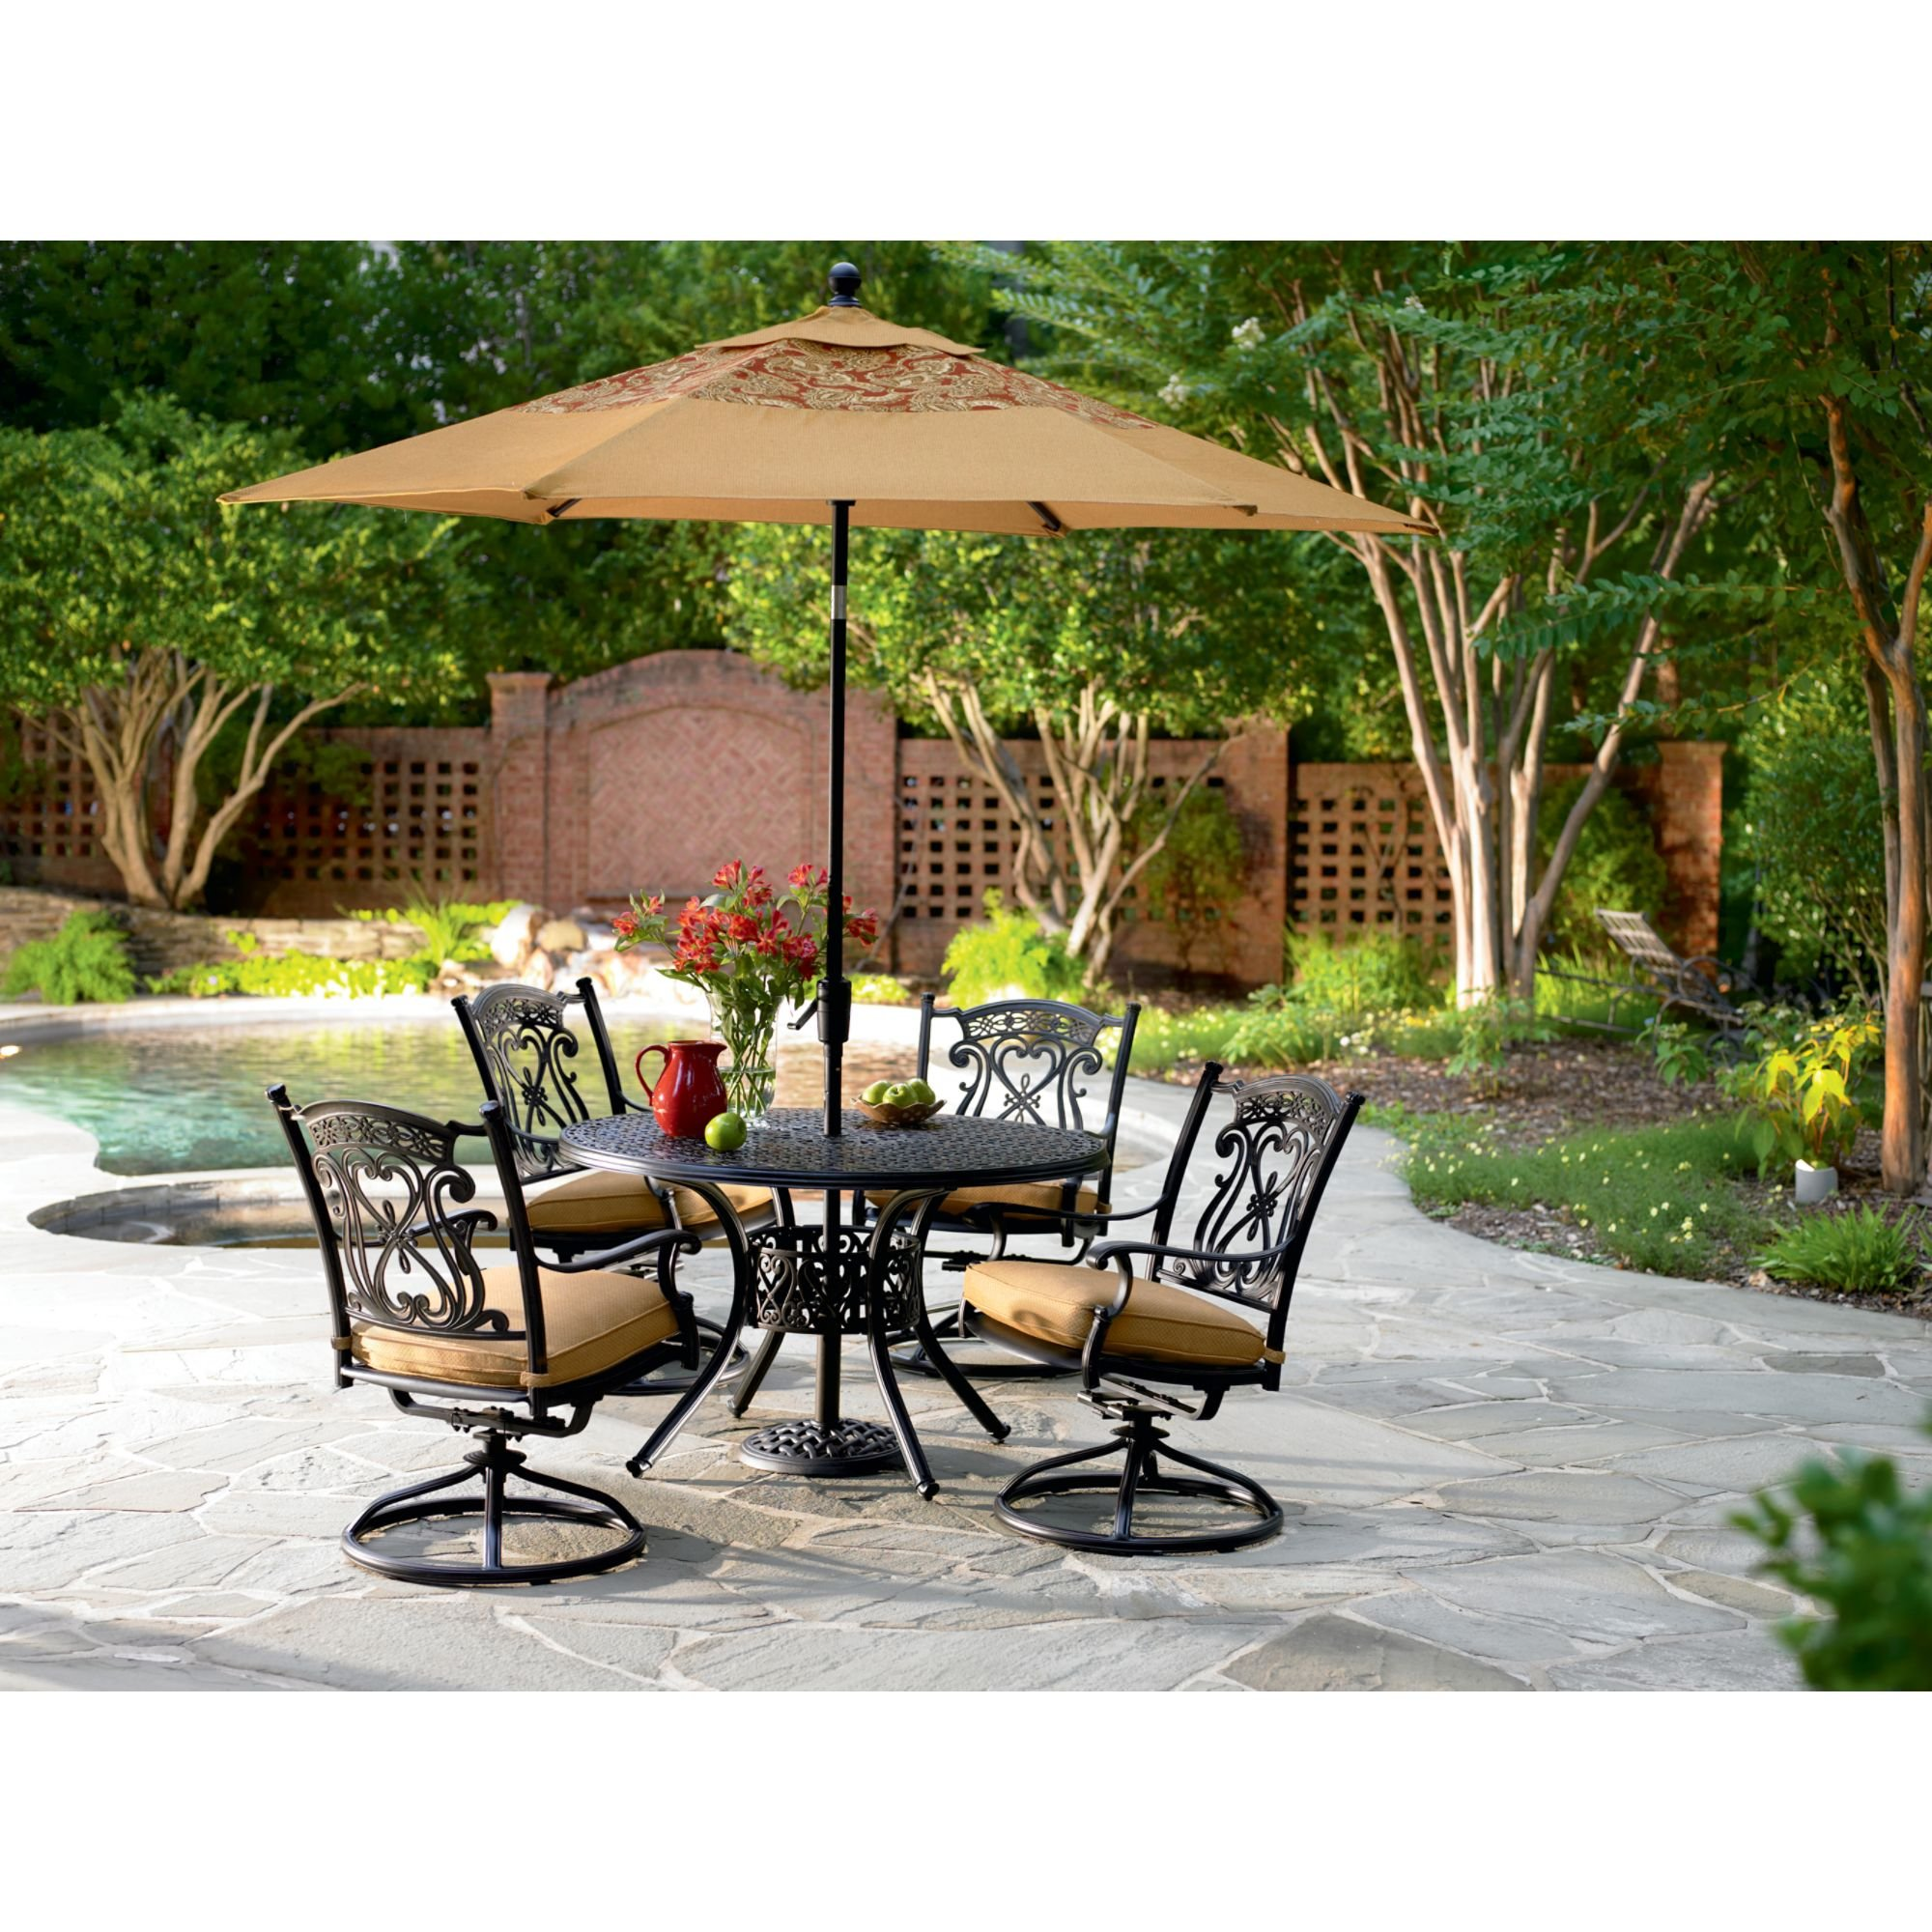 Sears Patio Furniture | Sears Automotive Coupons | Sears Retailmenot